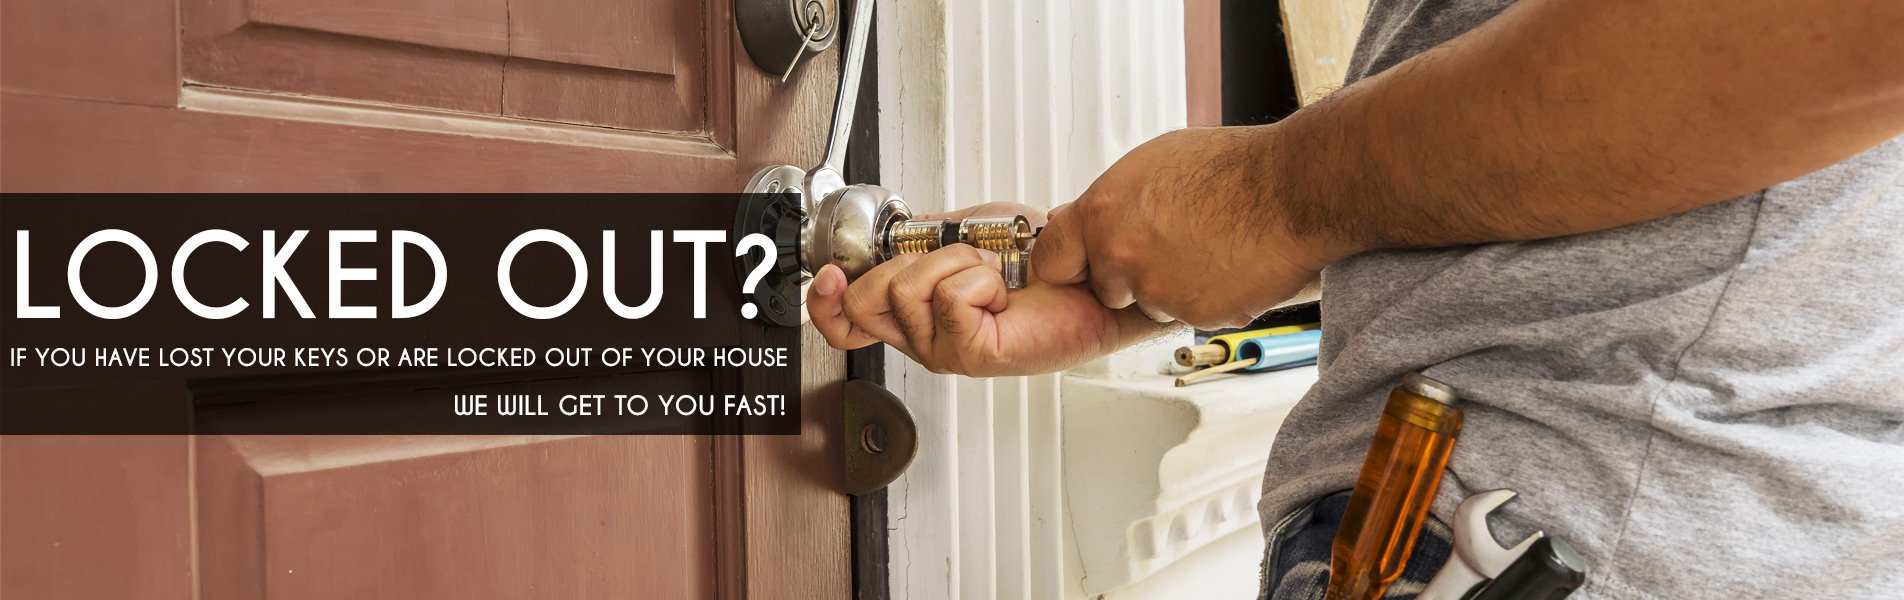 South Orange NJ Locksmith Store South Orange, NJ 973-841-6057